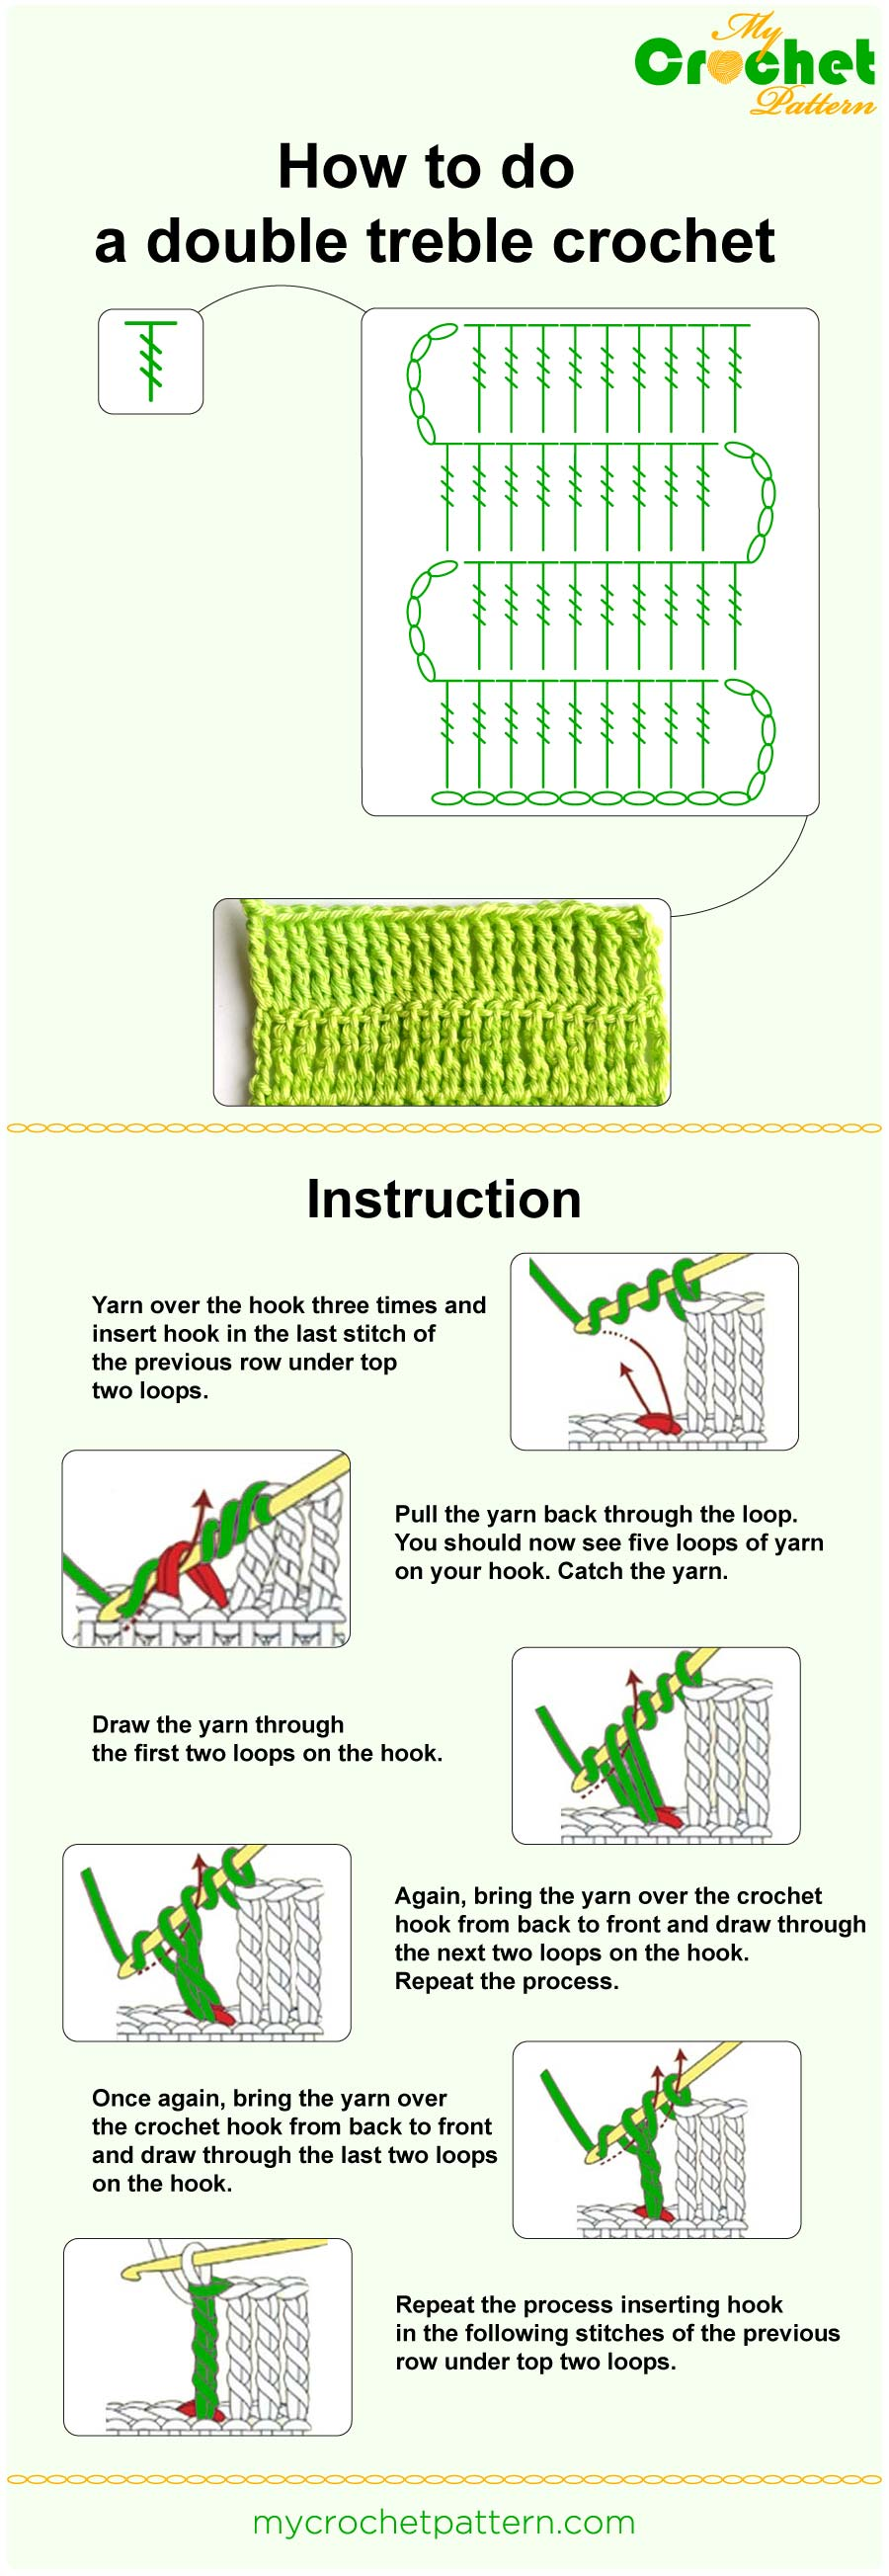 how to do a double treble crochet -infographic